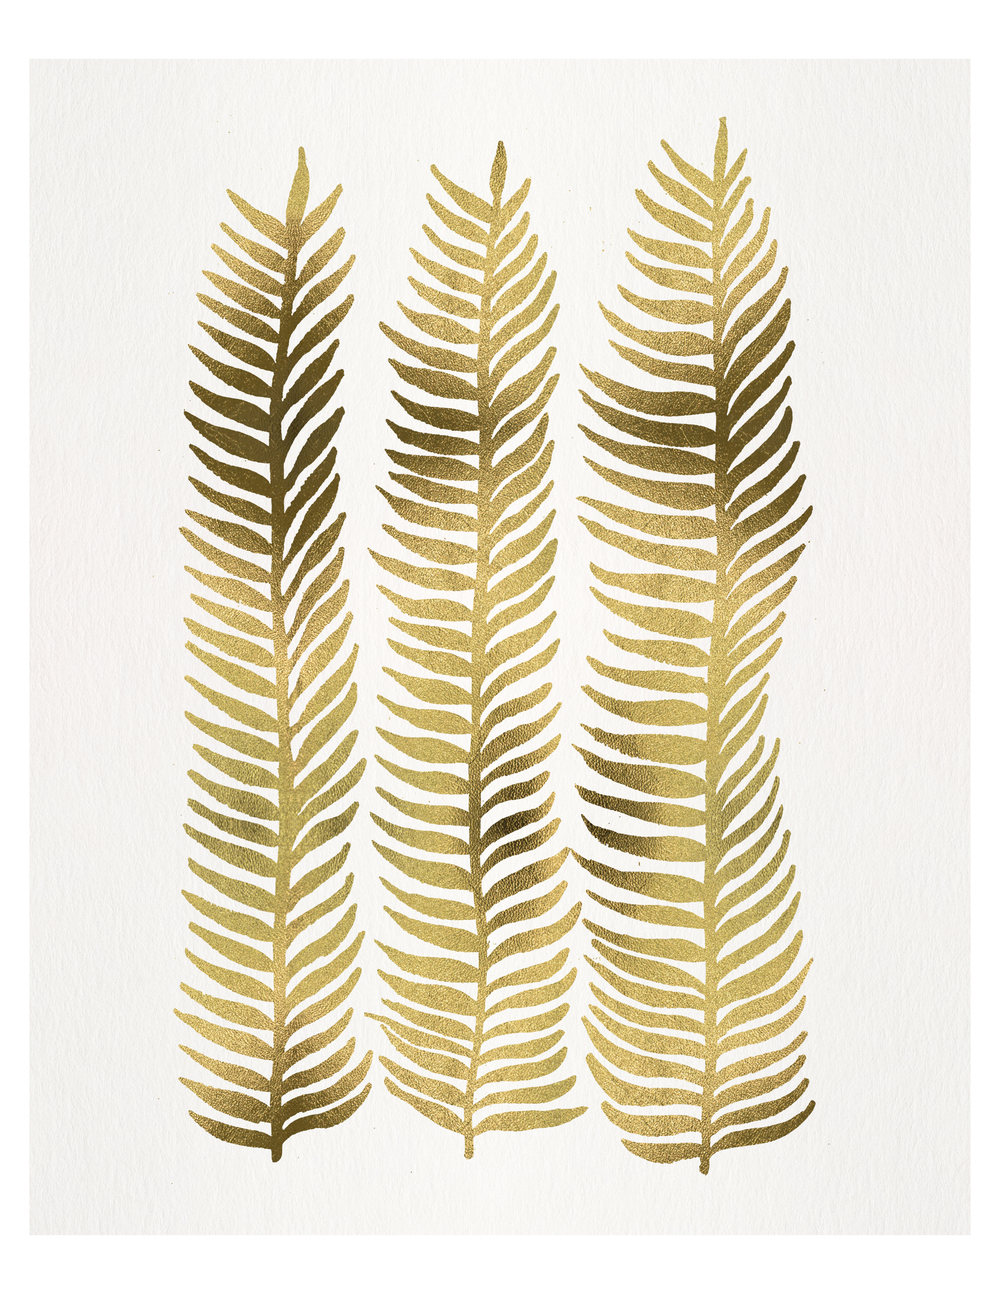 Golden Seaweed available  here .